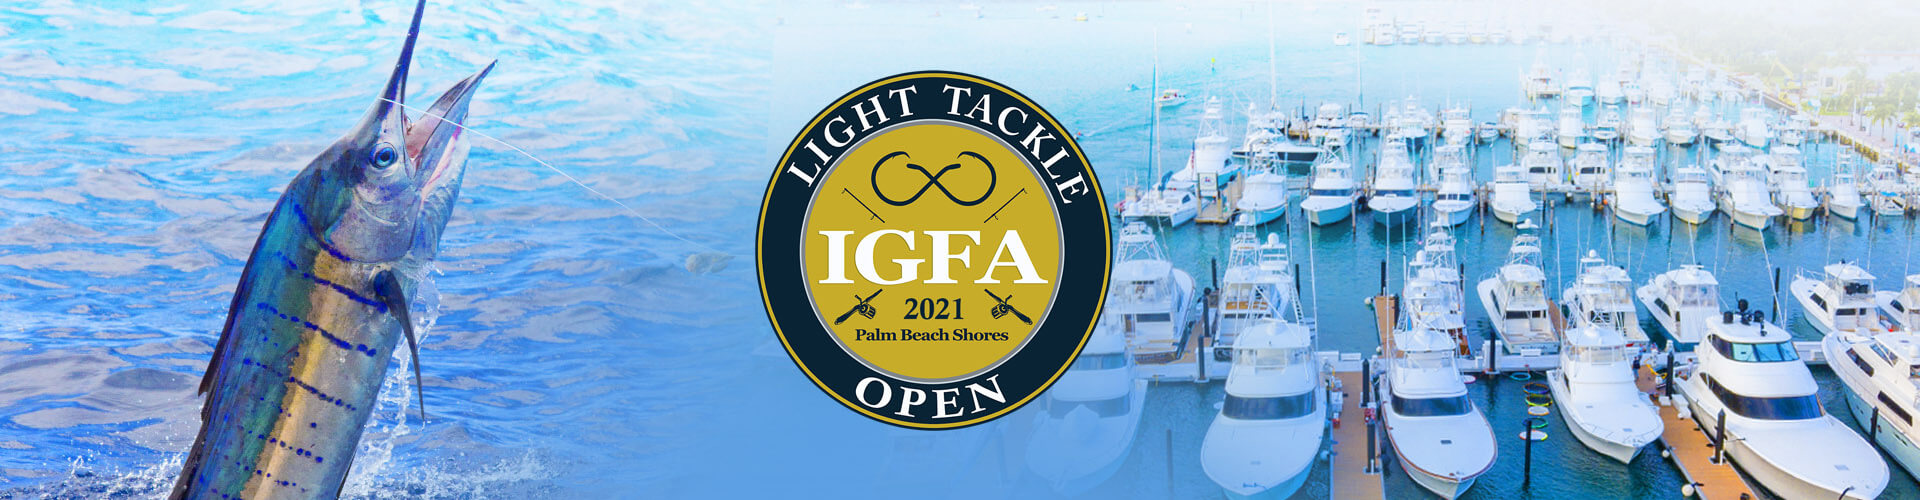 2021 IGFA Light Tackle Open